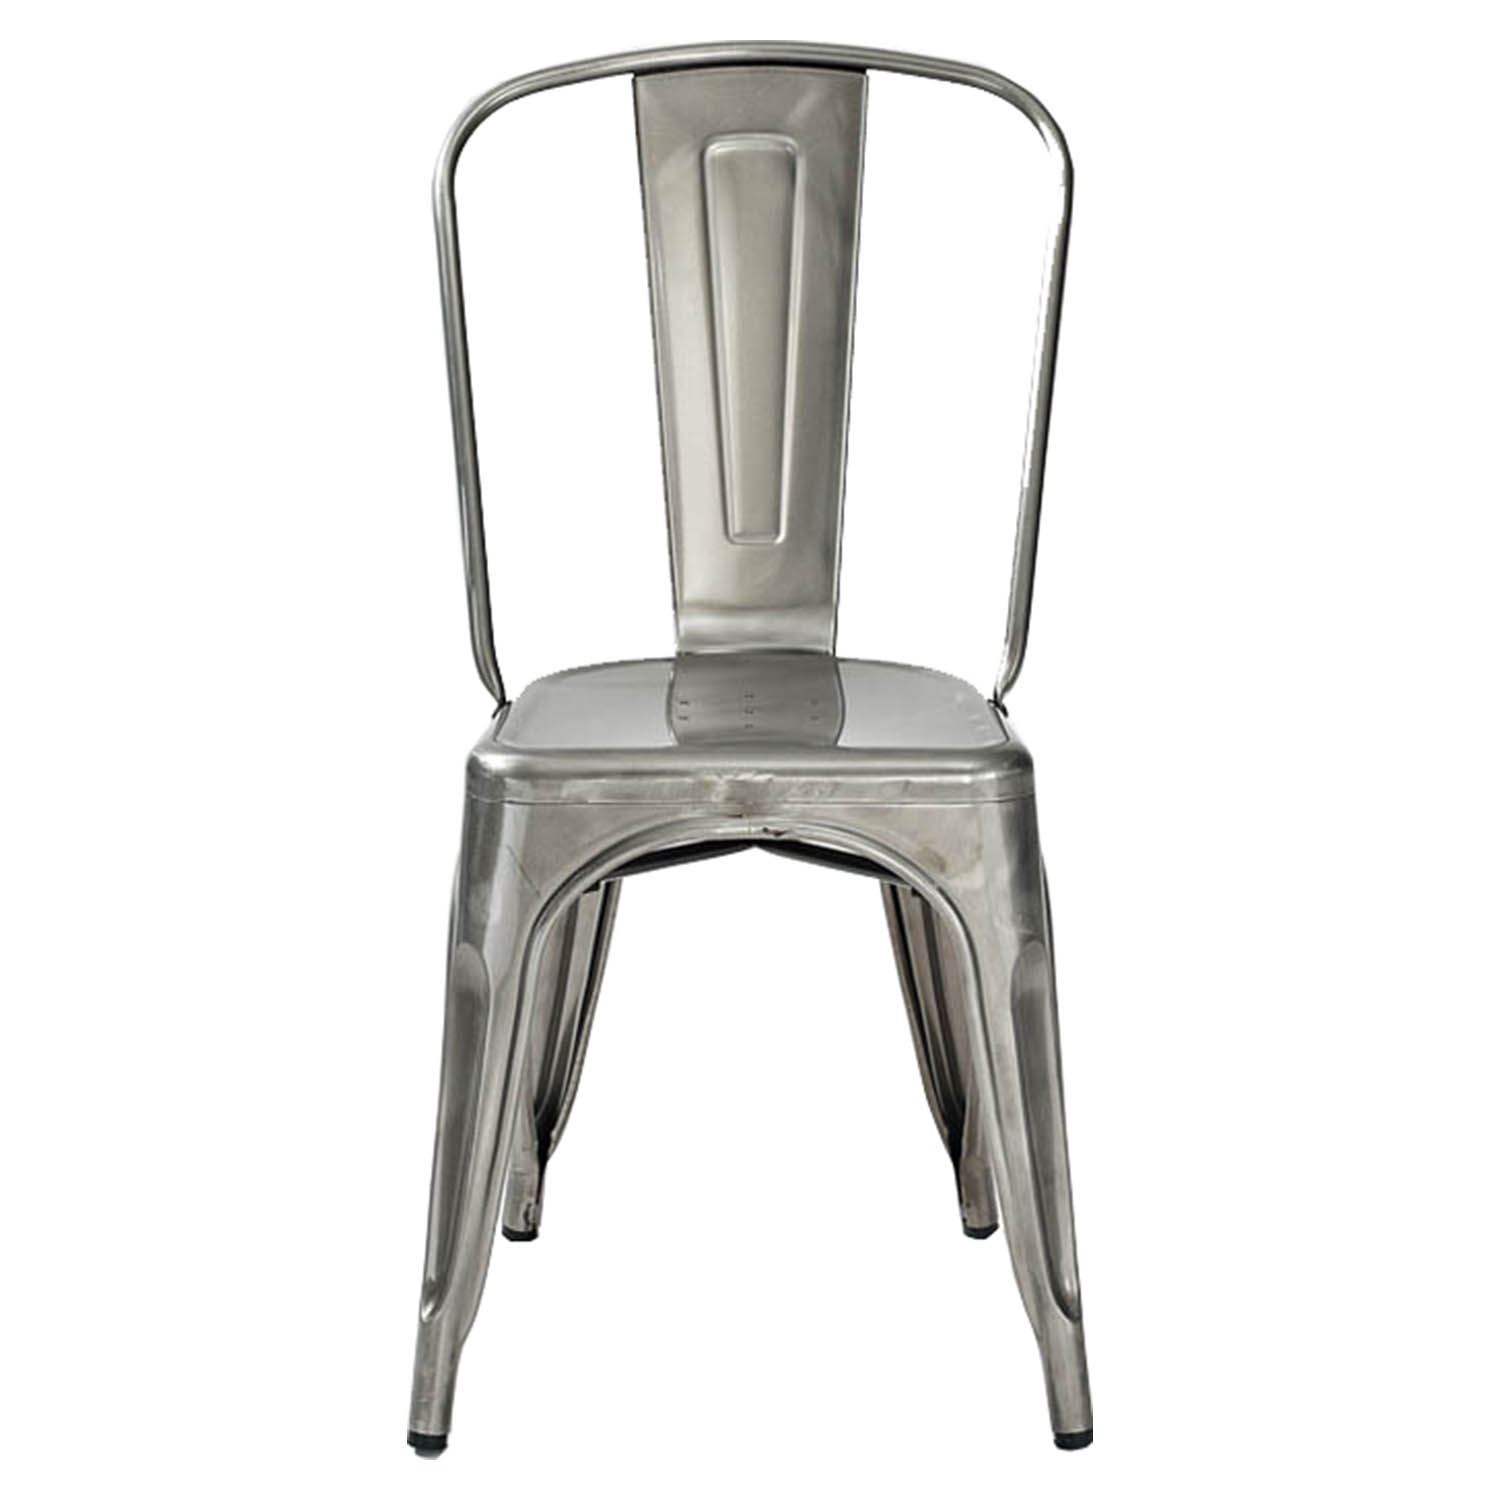 Cafe Kid Furniture Costco: Amelia Metal Cafe Chair - Galvanized (Set Of 2)